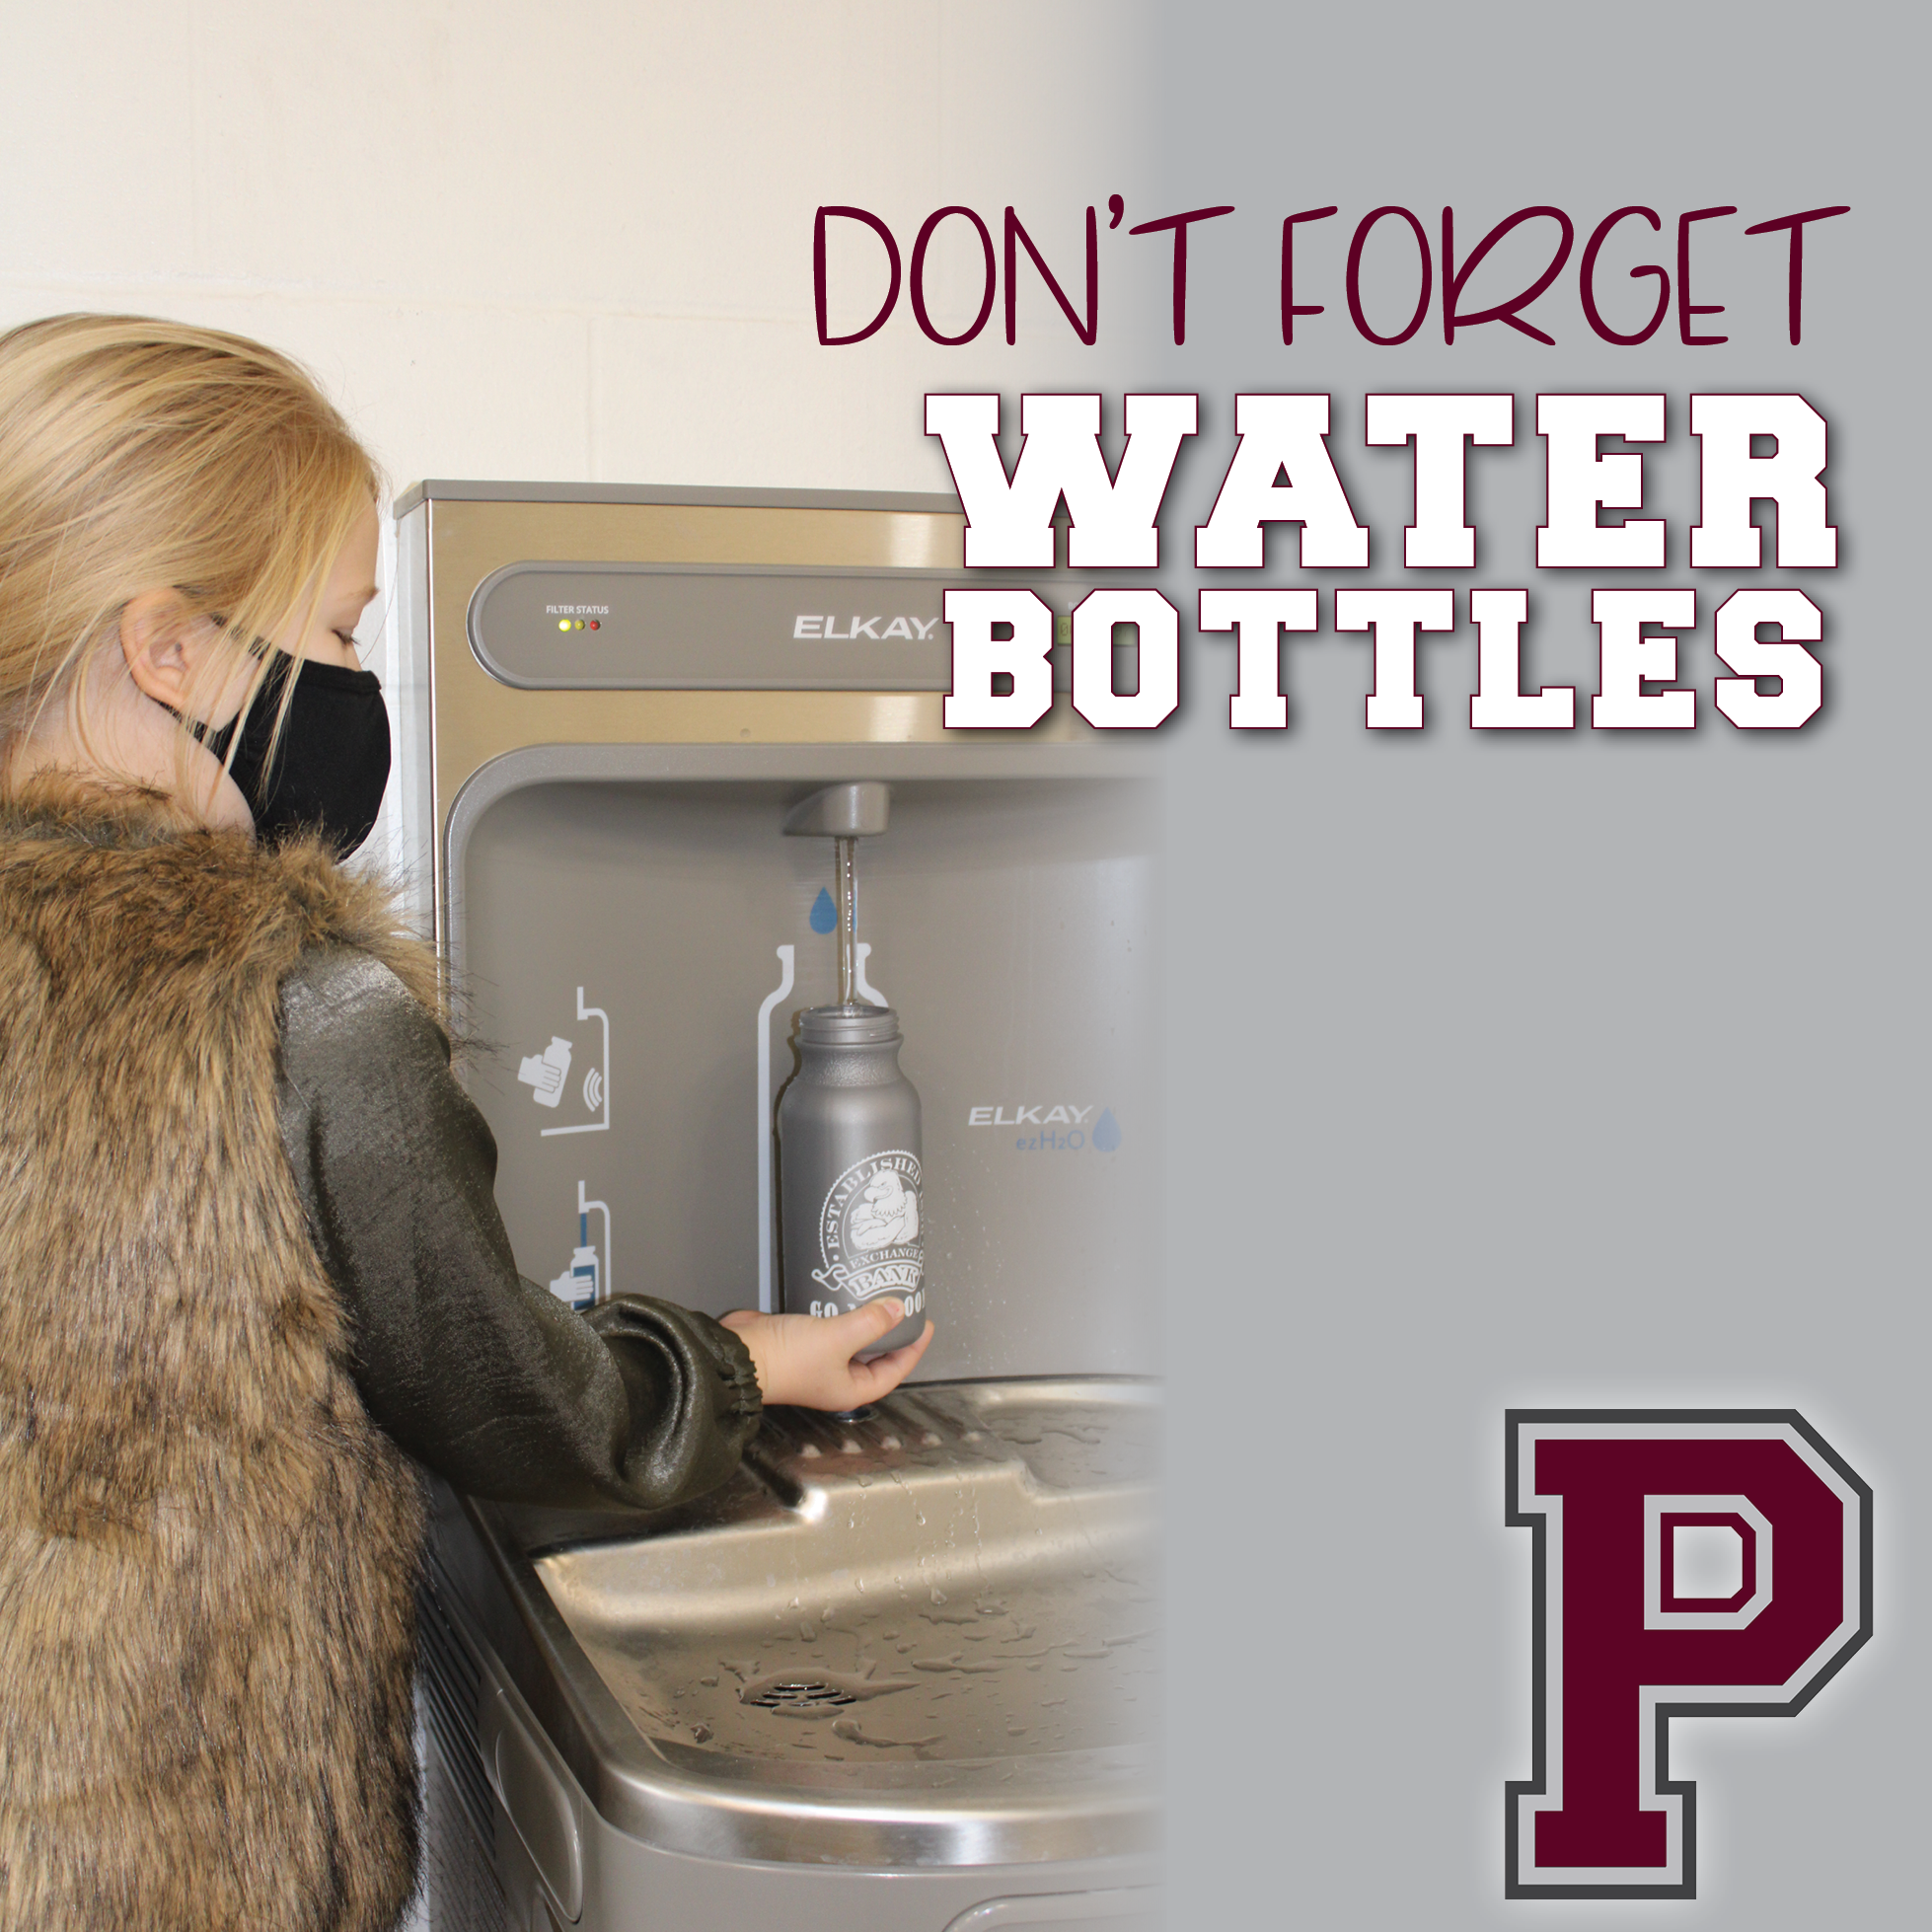 Don't forget your water bottle.